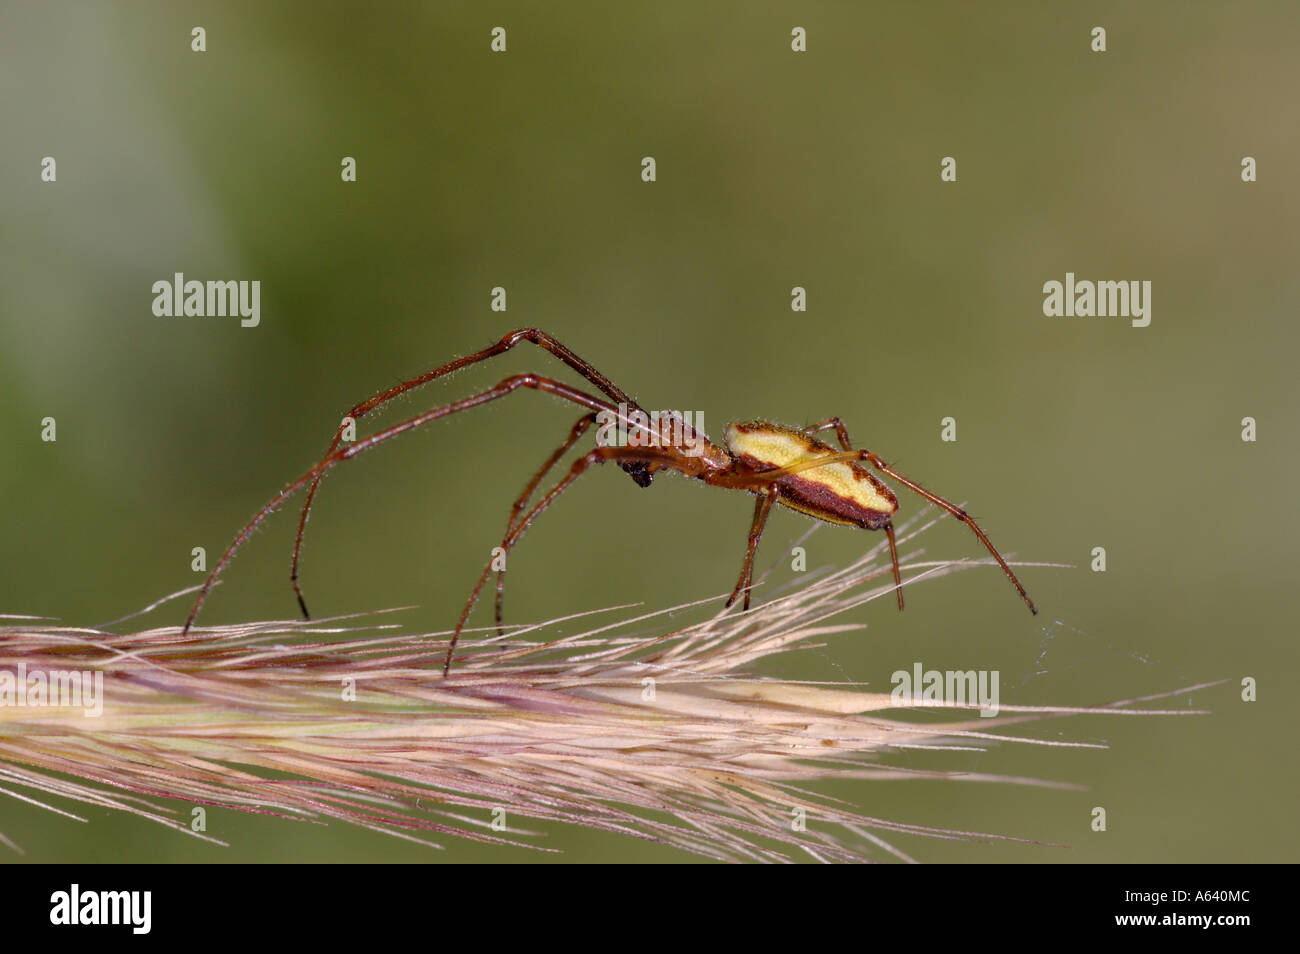 Macro of yellow brown striped spider sitting on a spikelet . All eight black eyes are visible . Kamchatka , Siberia , Pacific - Stock Image